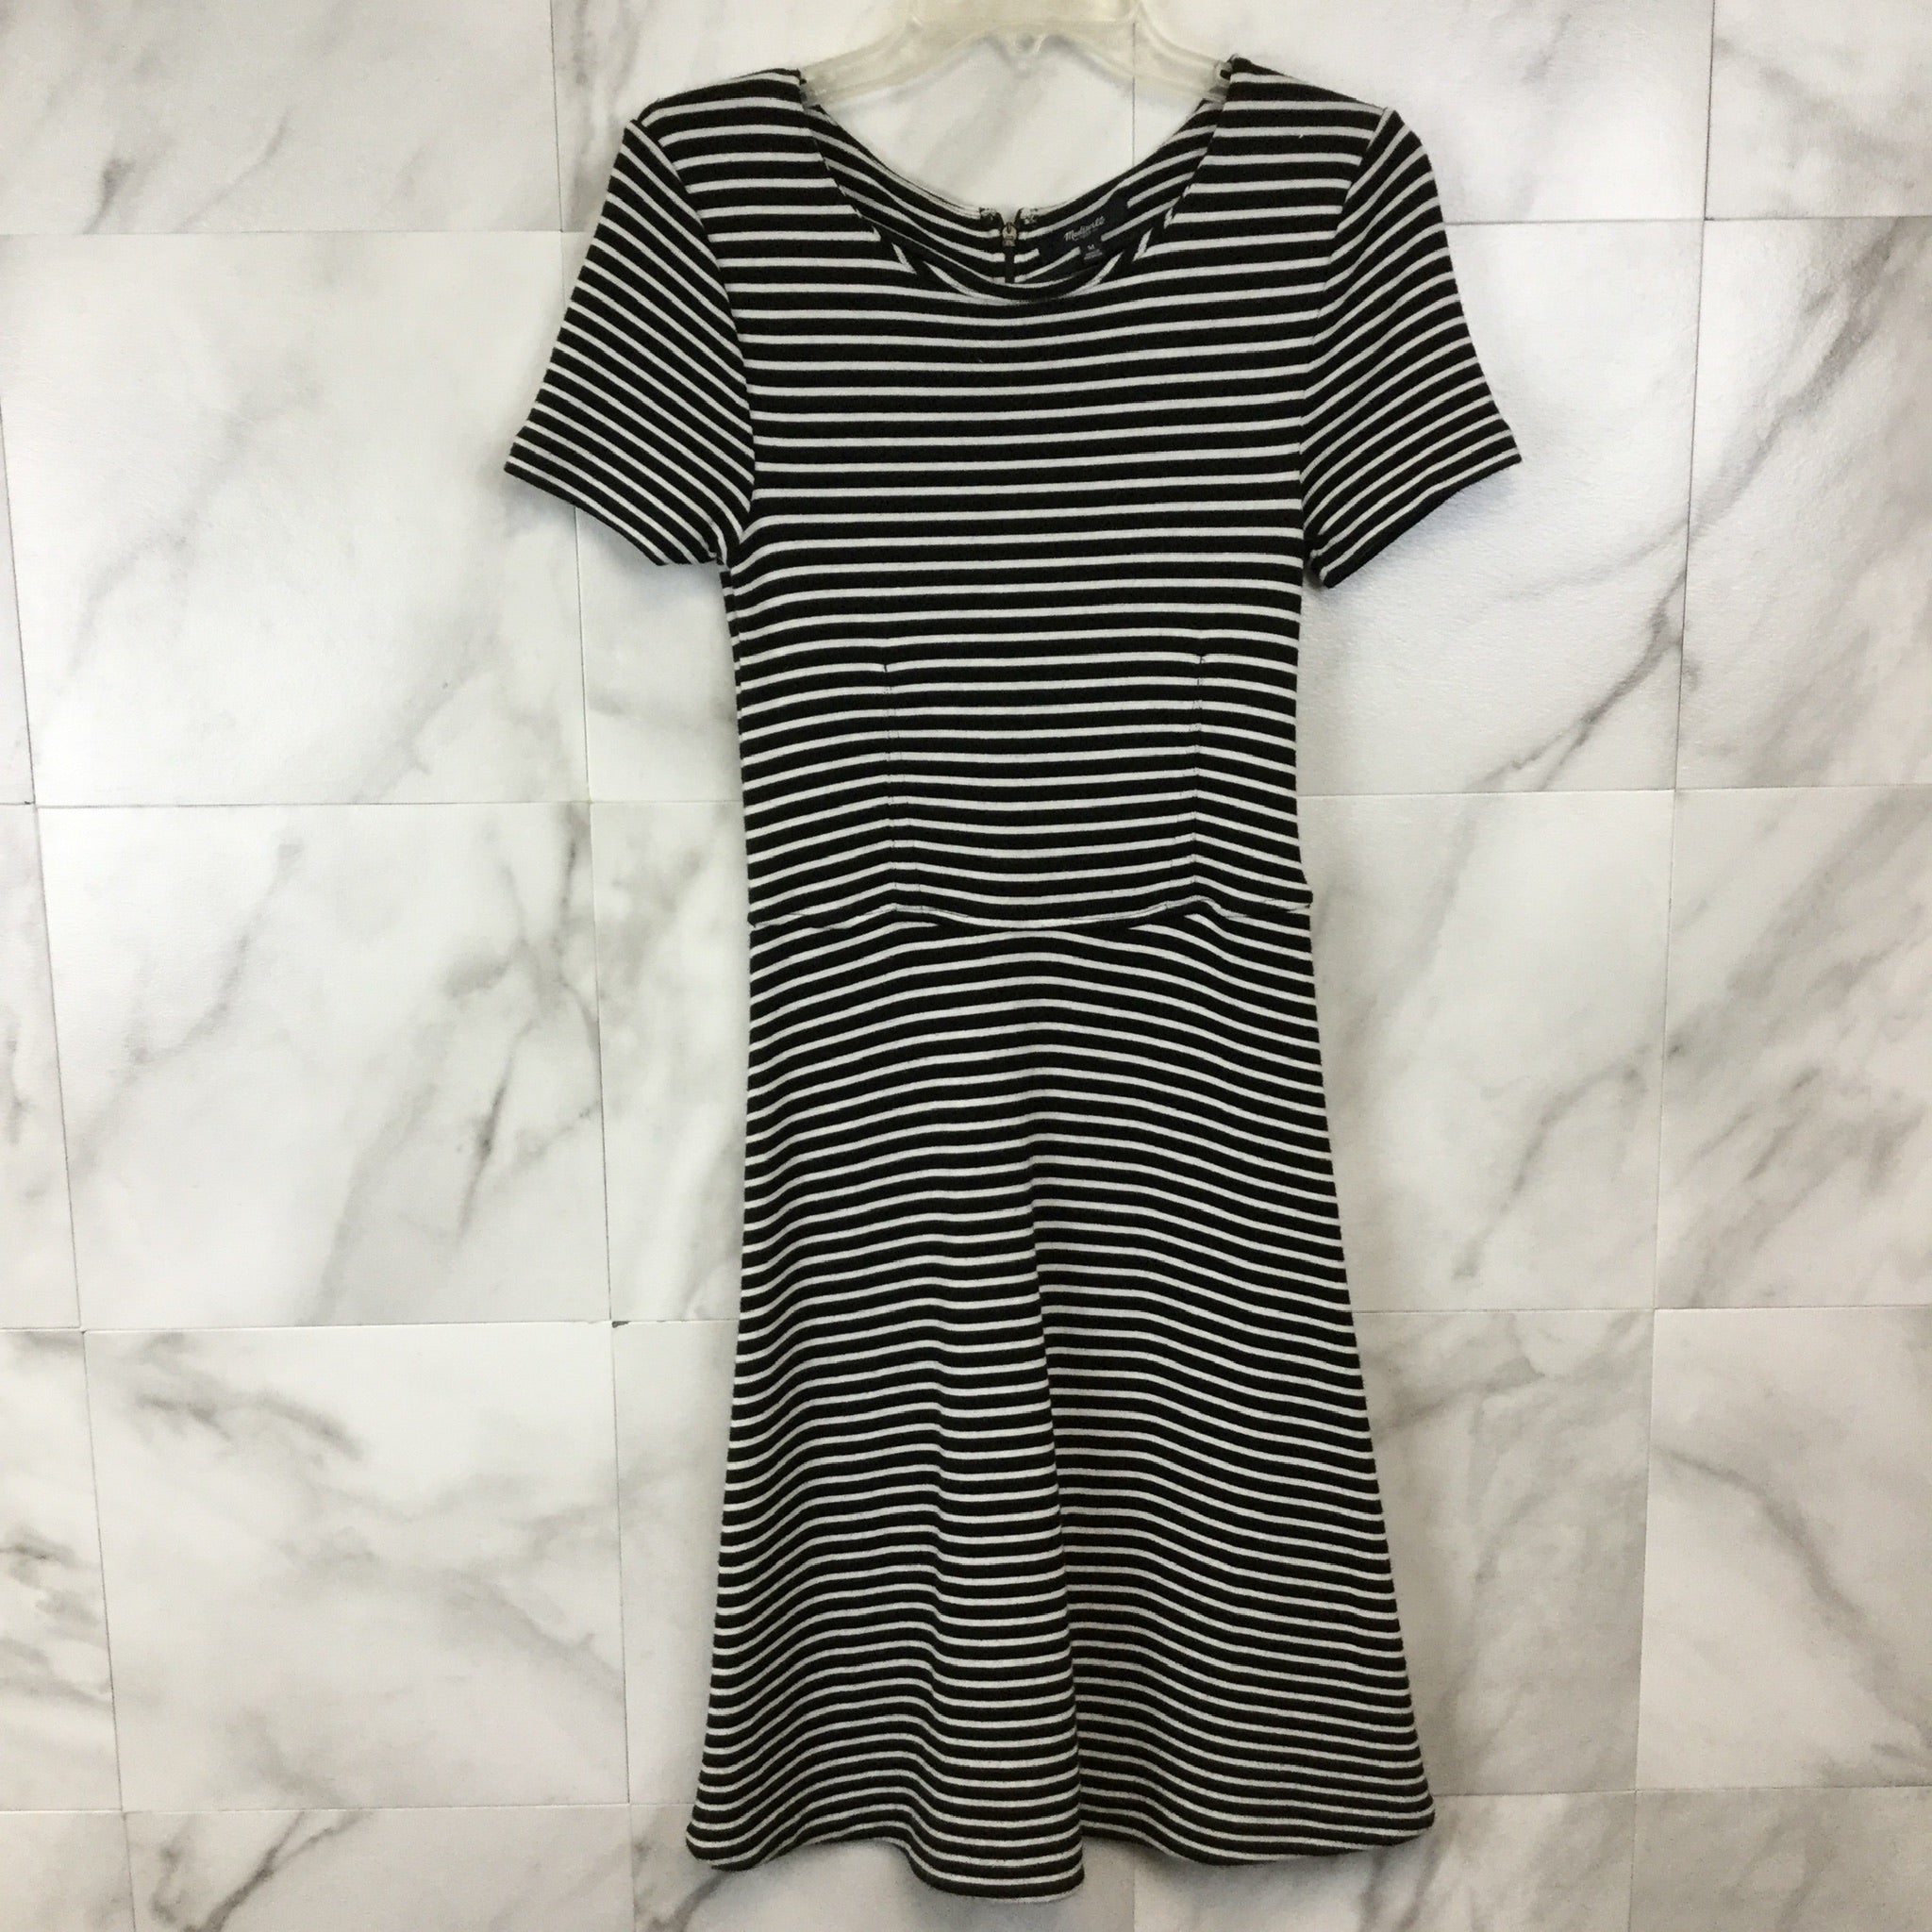 Madewell Gallerist Dress - size M